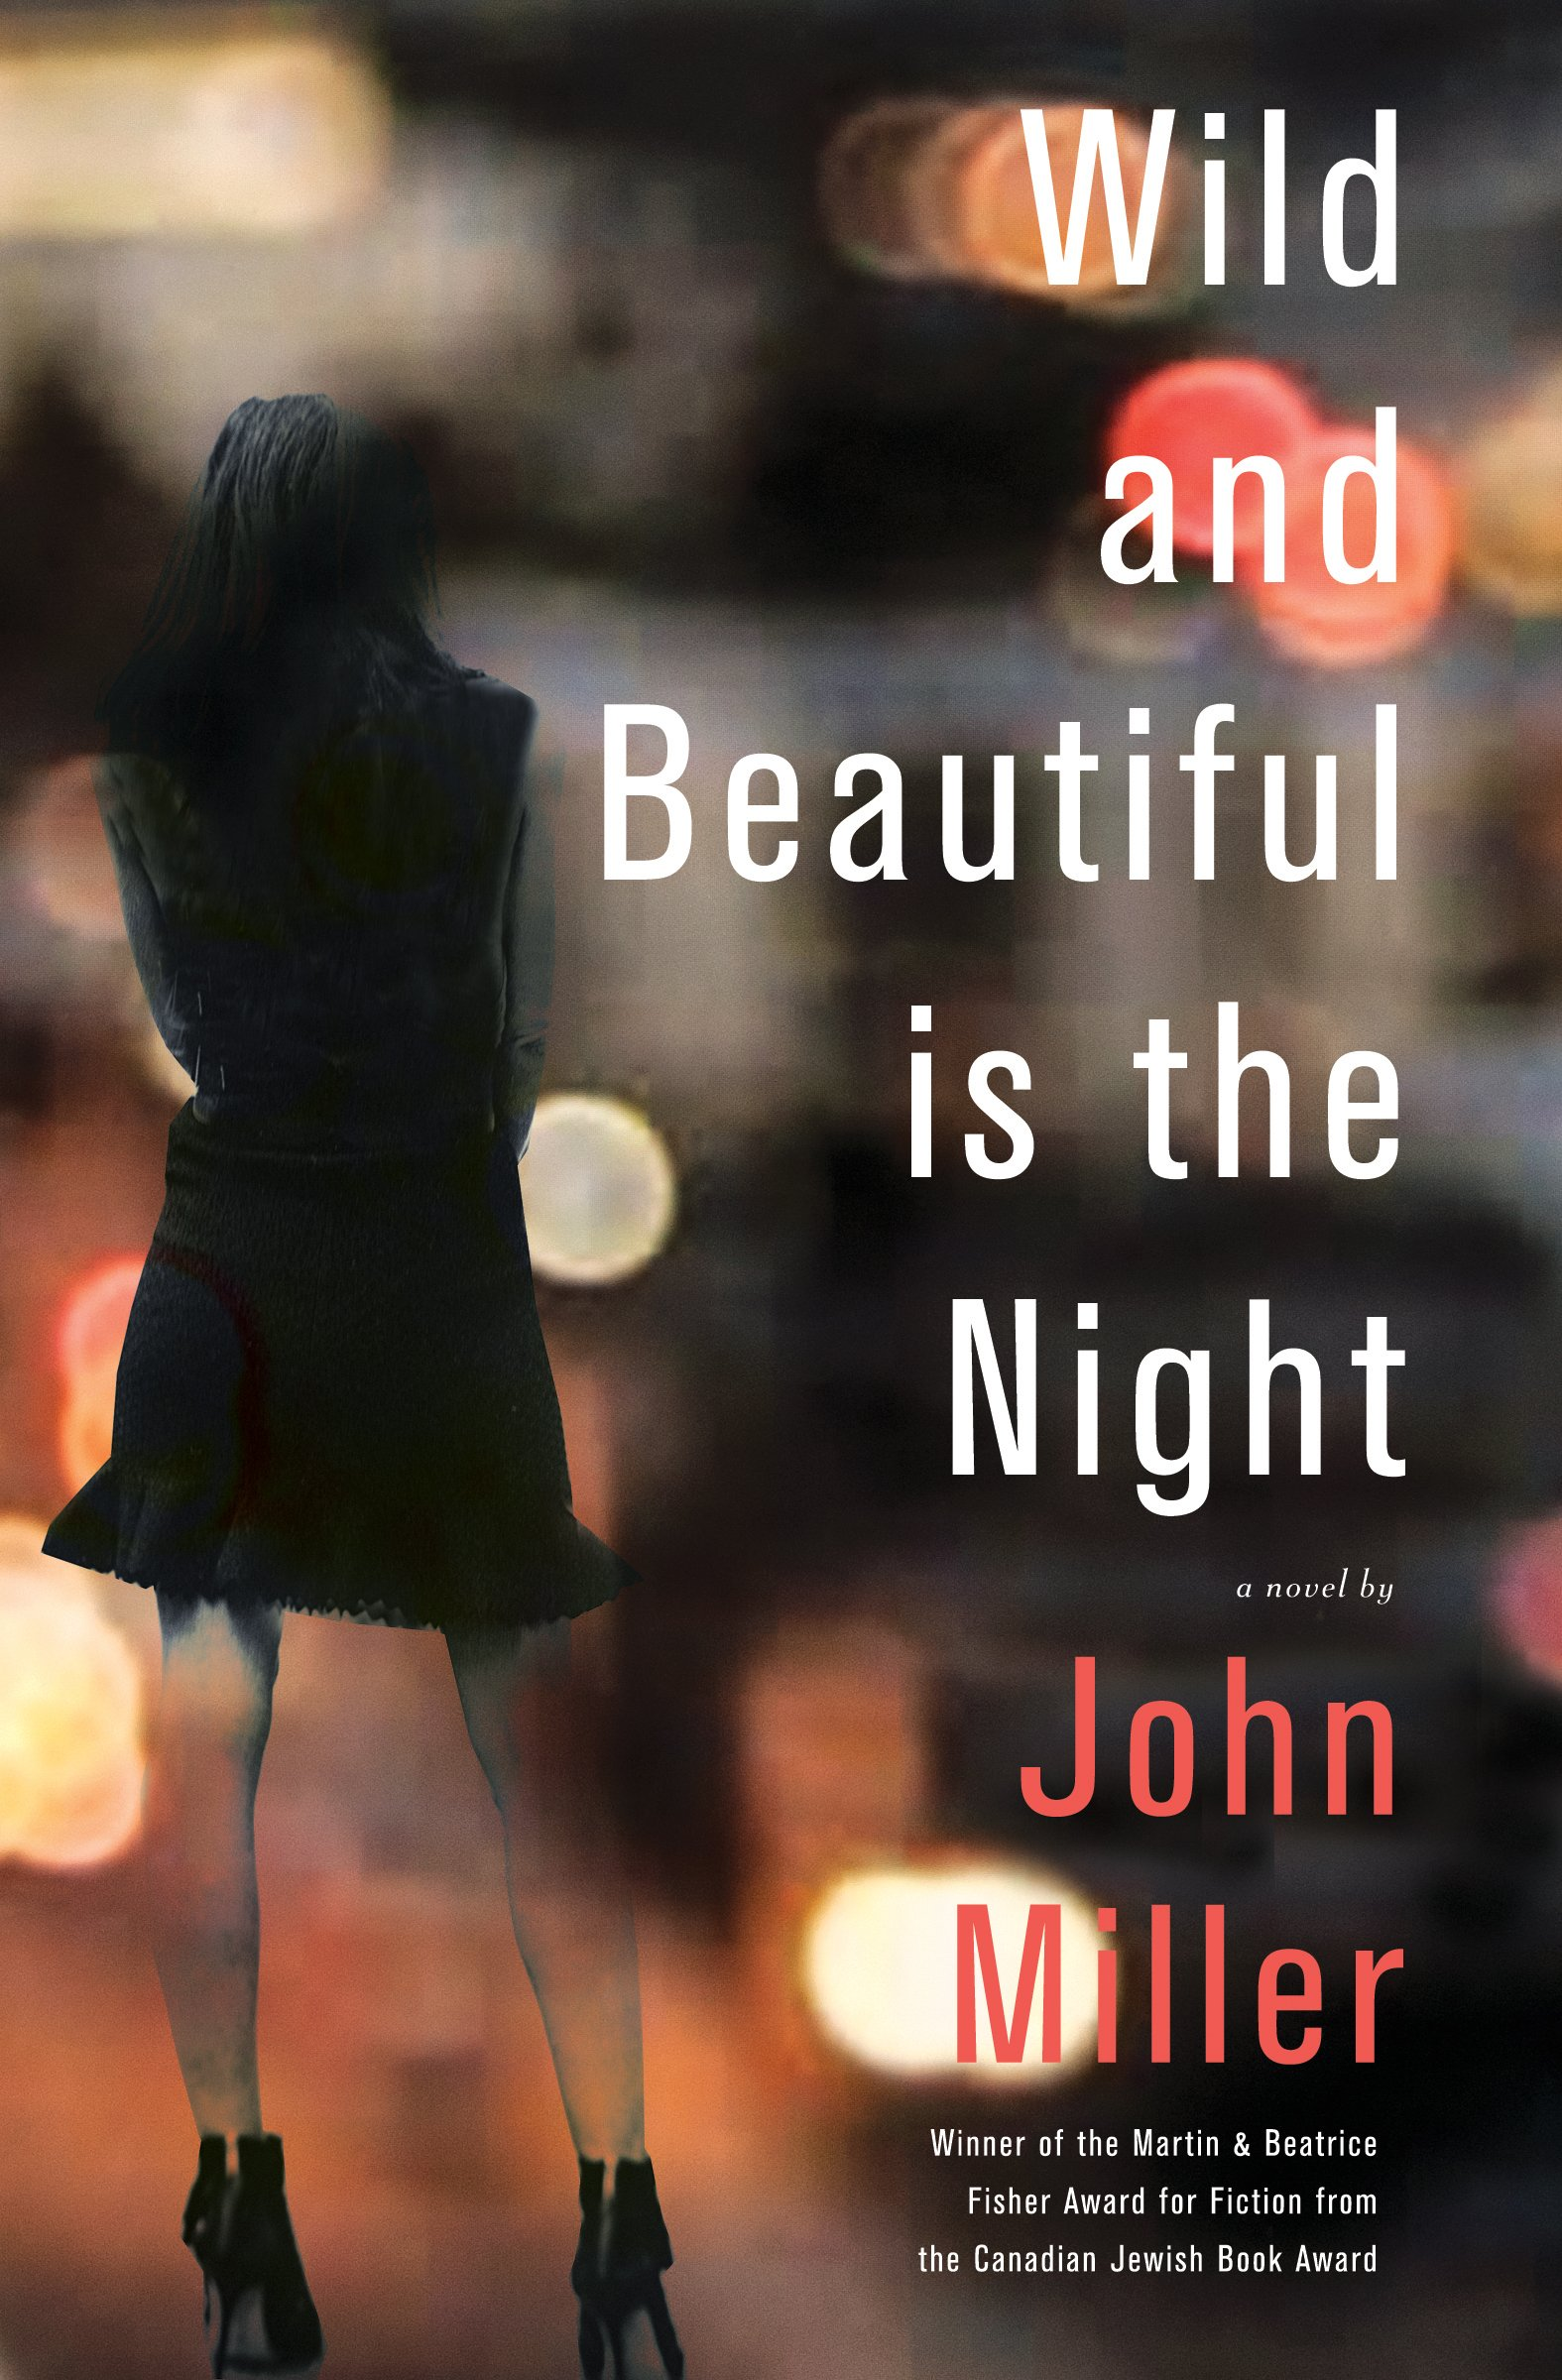 John Miller. Wild and Beautiful is the Night. Cormorant Books, $22.95, 296 pp., ISBN: 978-1770865105